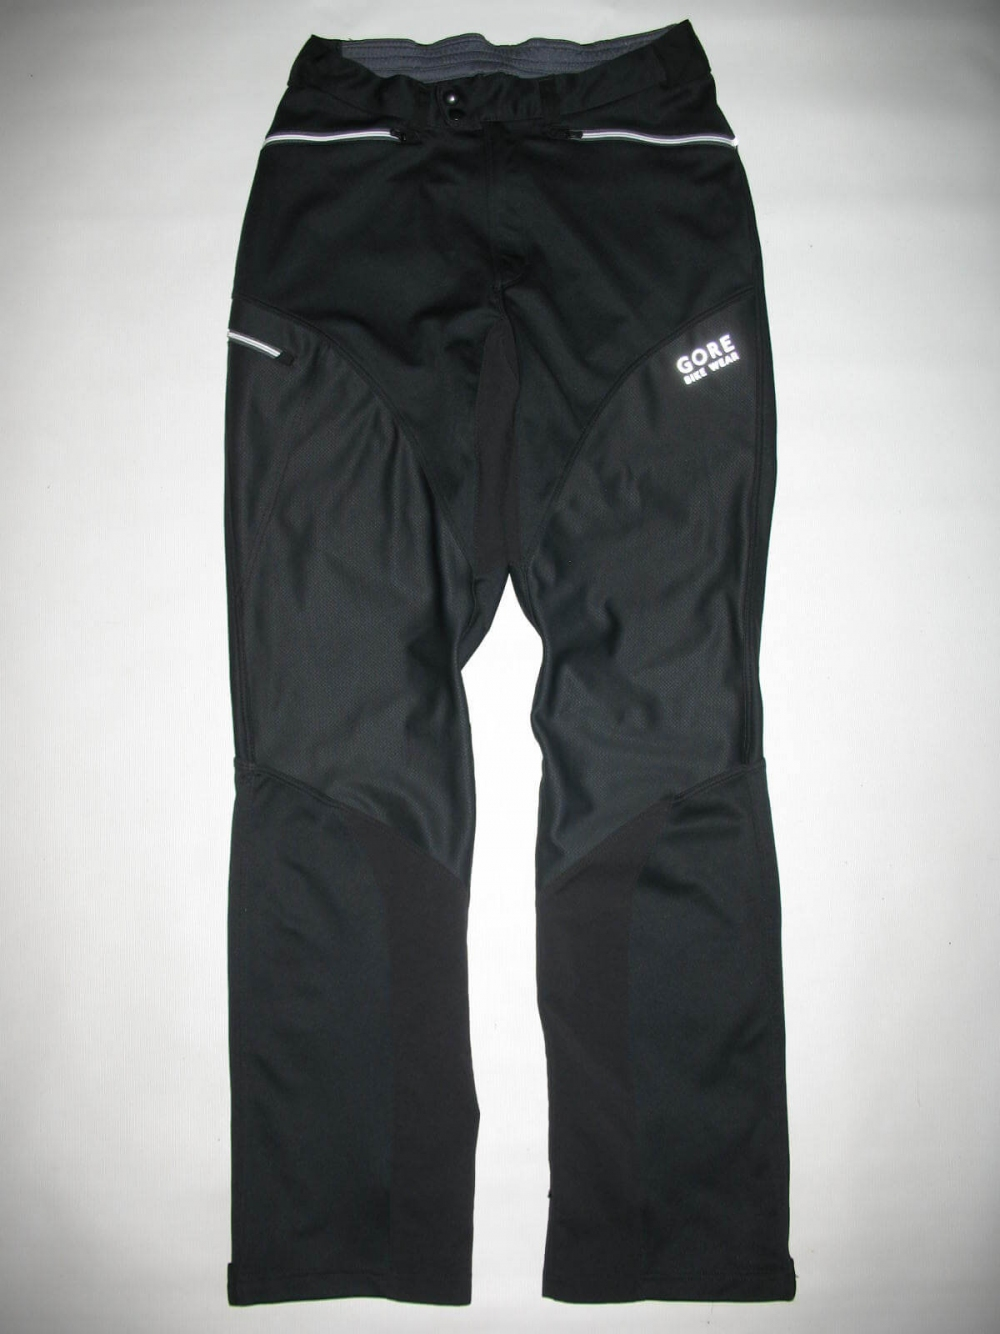 Штаны GORE Countdown Windstopper Soft Shell Pants (размер M) - 1